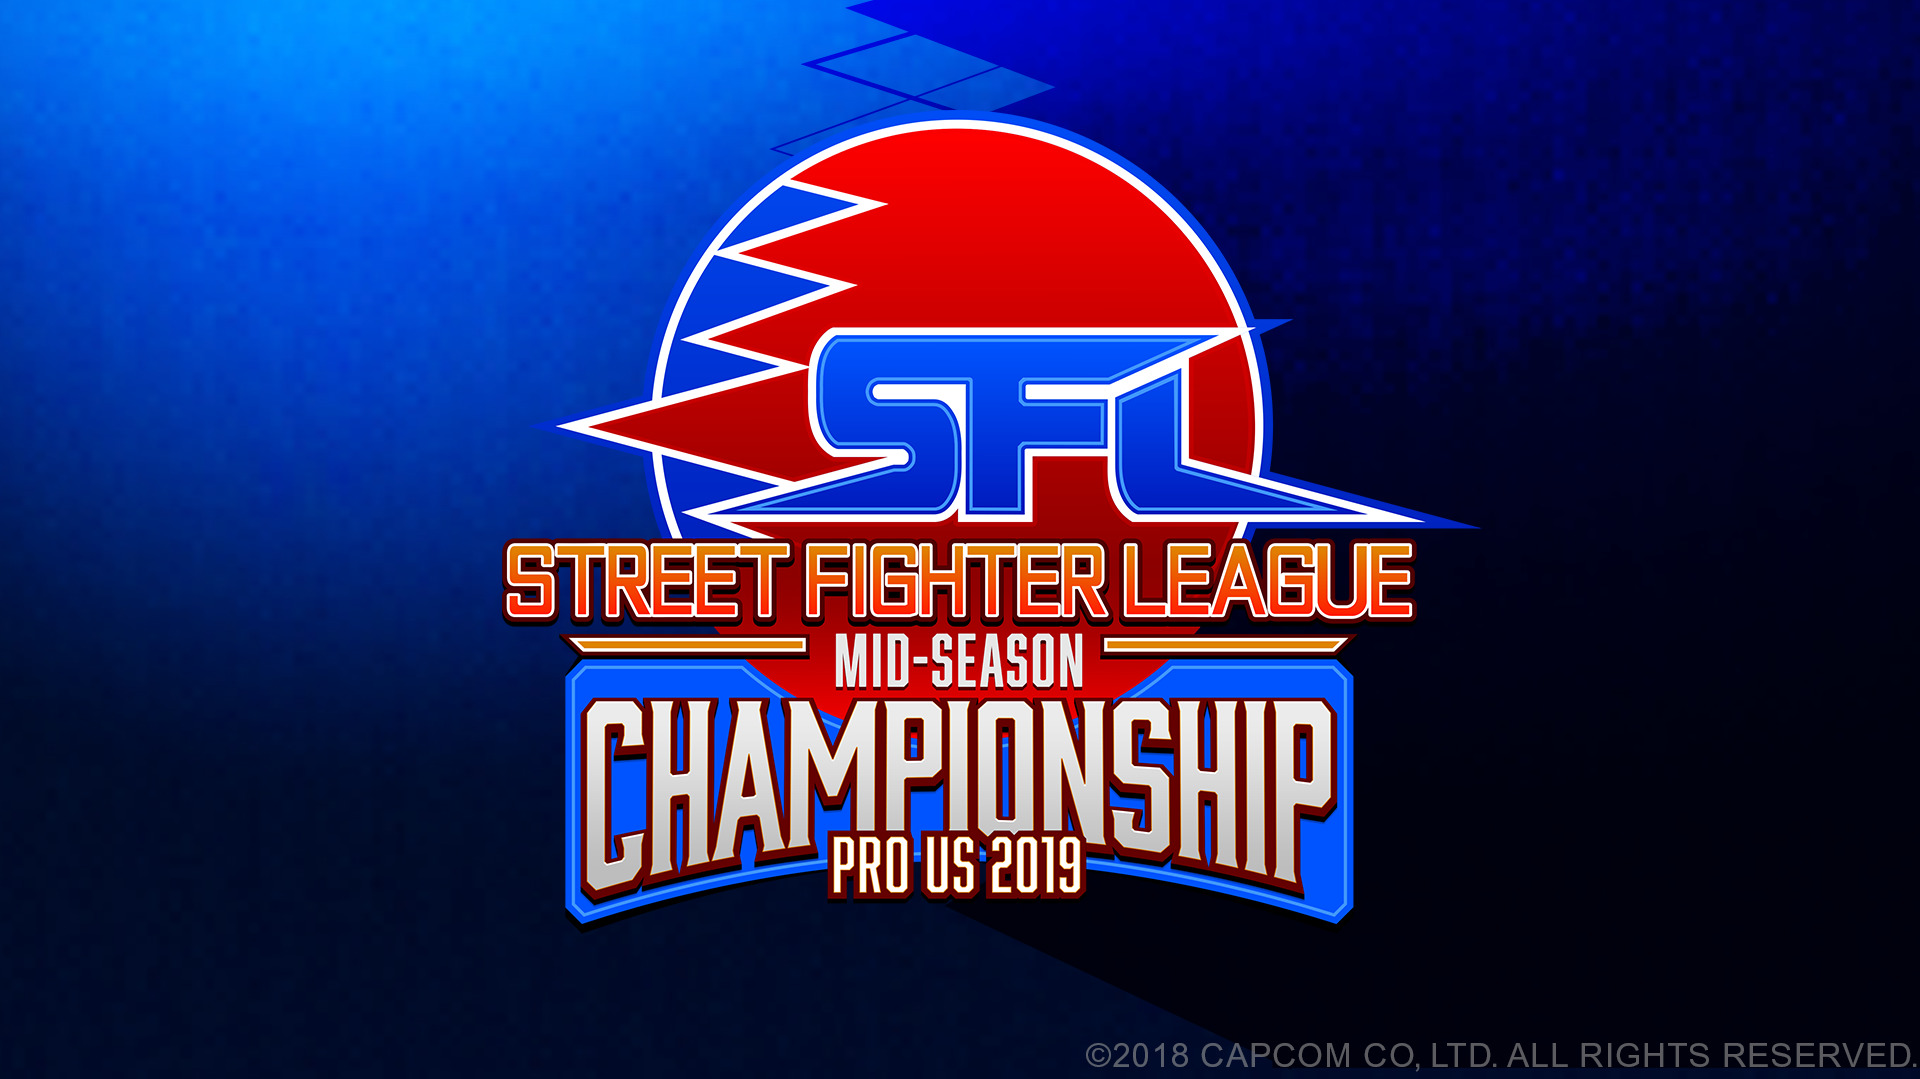 Street Fighter League